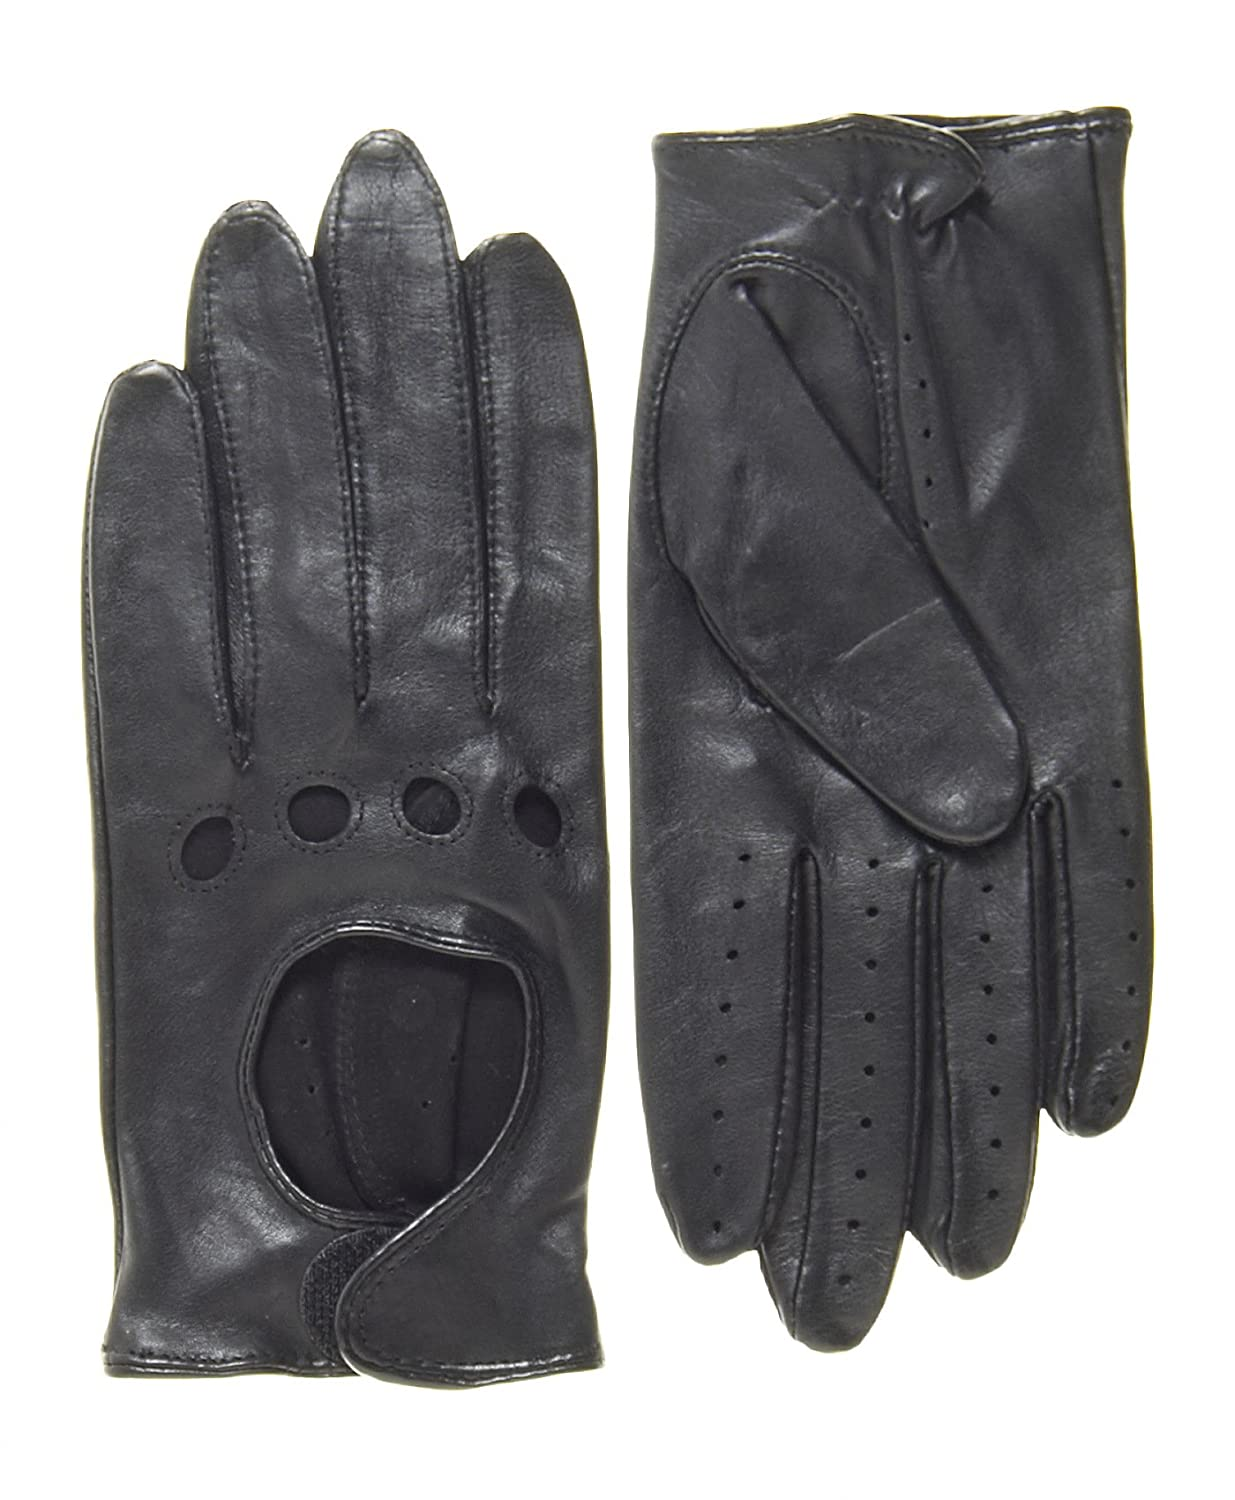 Womens leather gloves australia - Pratt And Hart Women S Womens Leather Driving Gloves Size S Color Black At Amazon Women S Clothing Store Cold Weather Gloves